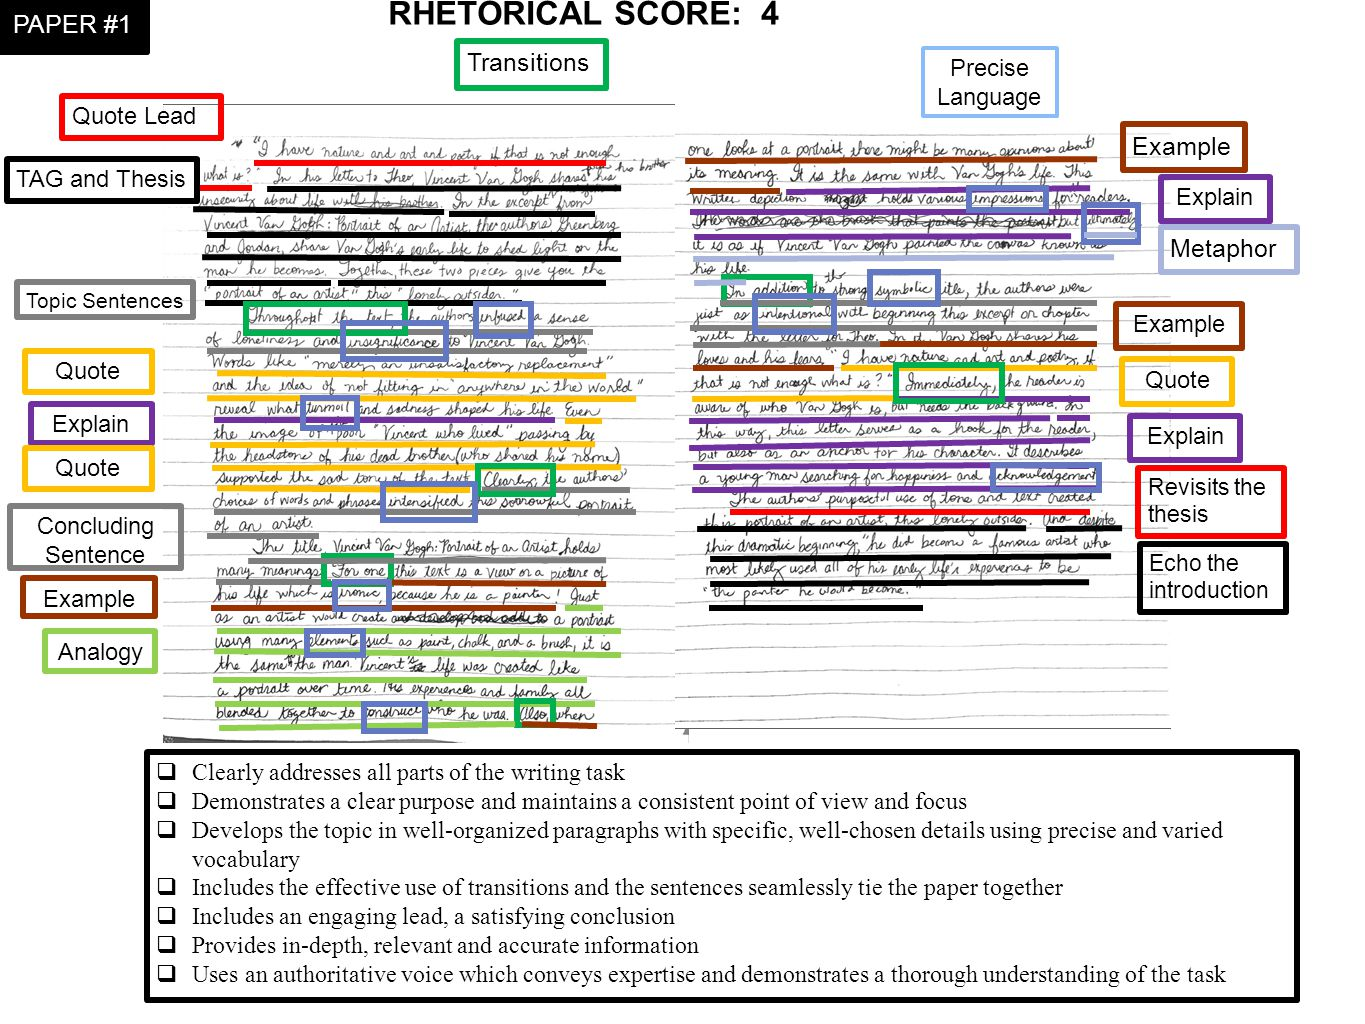 RHETORICAL SCORE:4  Clearly addresses all parts of the writing task  Demonstrates a clear purpose and maintains a consistent point of view and focus